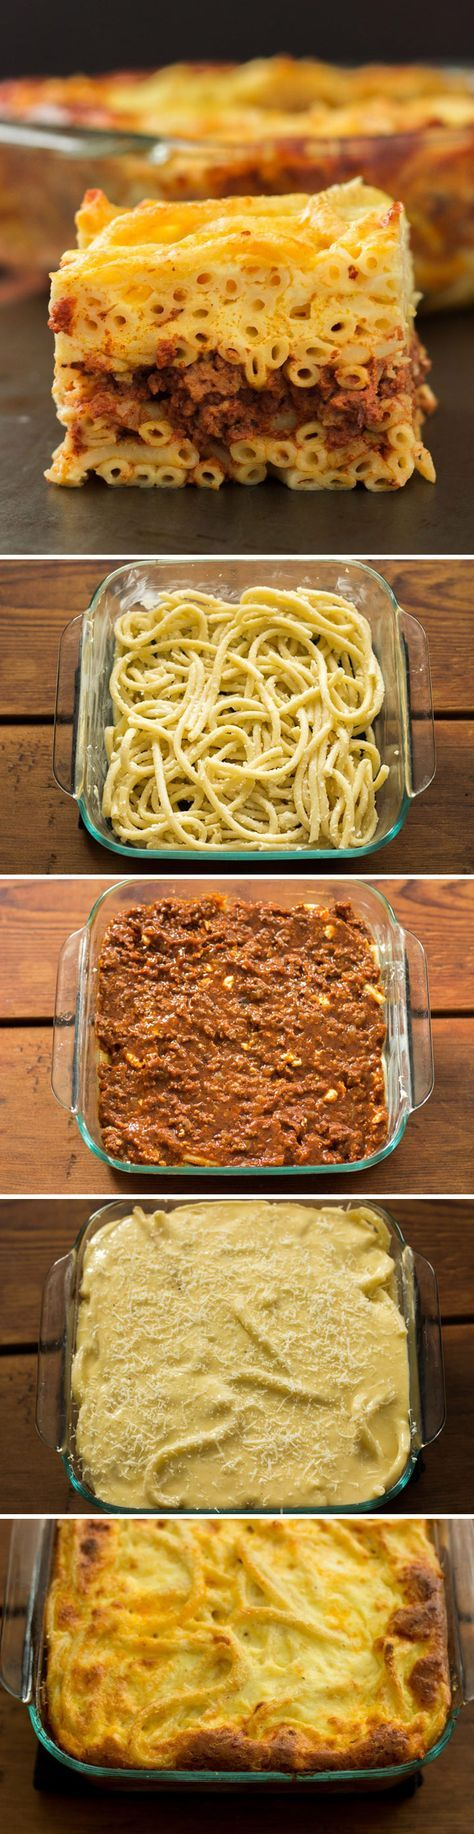 How to make pastitsio the greek answer to lasagna recipe classic greek pastitsio tired with regular old lasagna spice things up with pastitsio forumfinder Choice Image